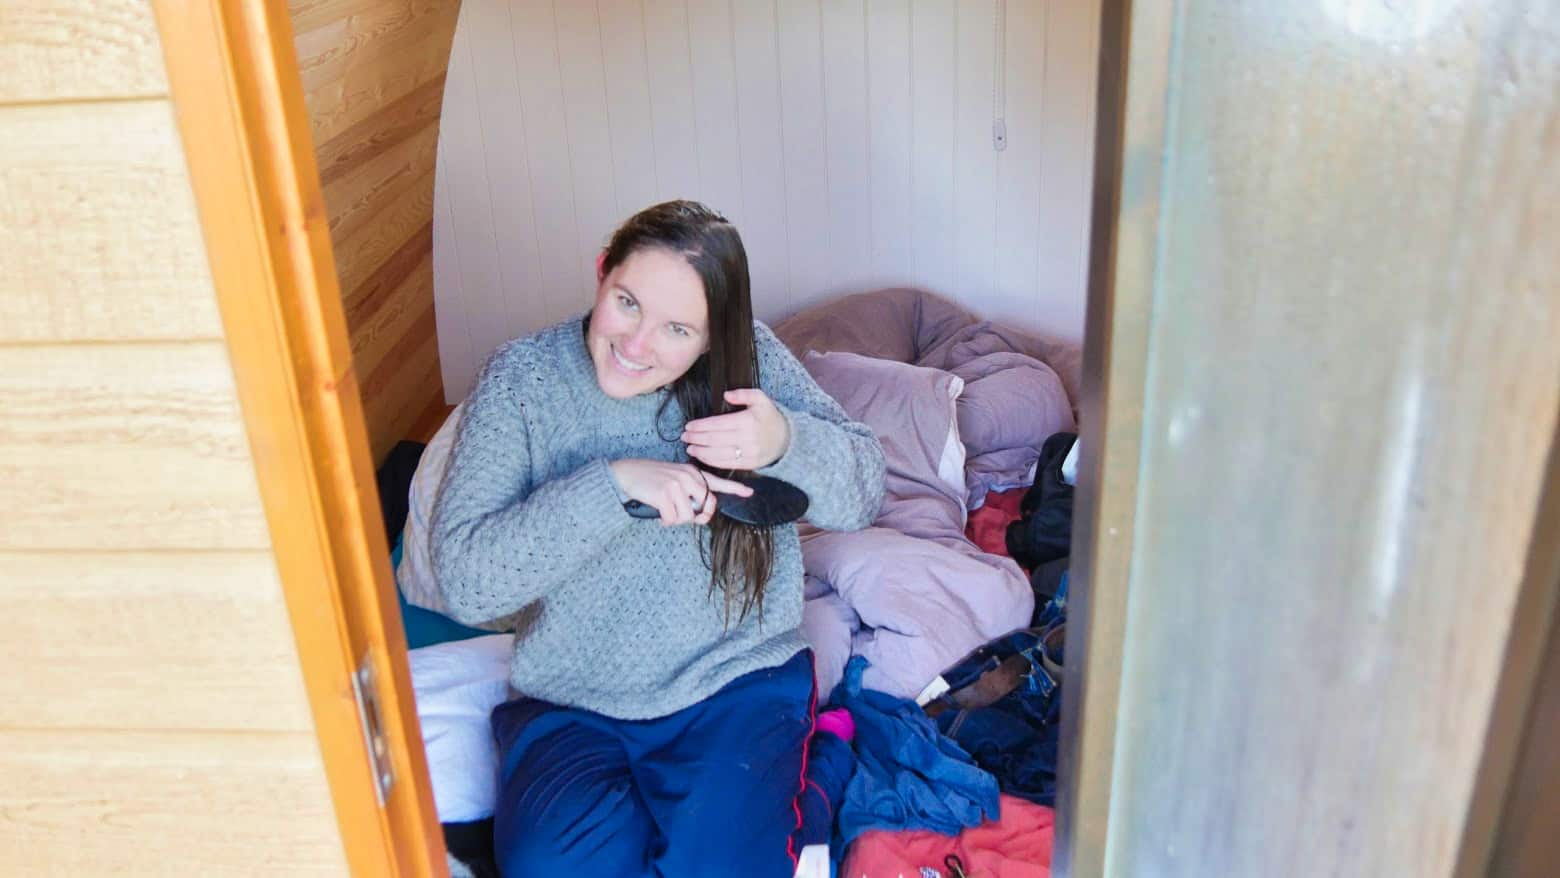 Kalyn brushing her hair in a glamping hut